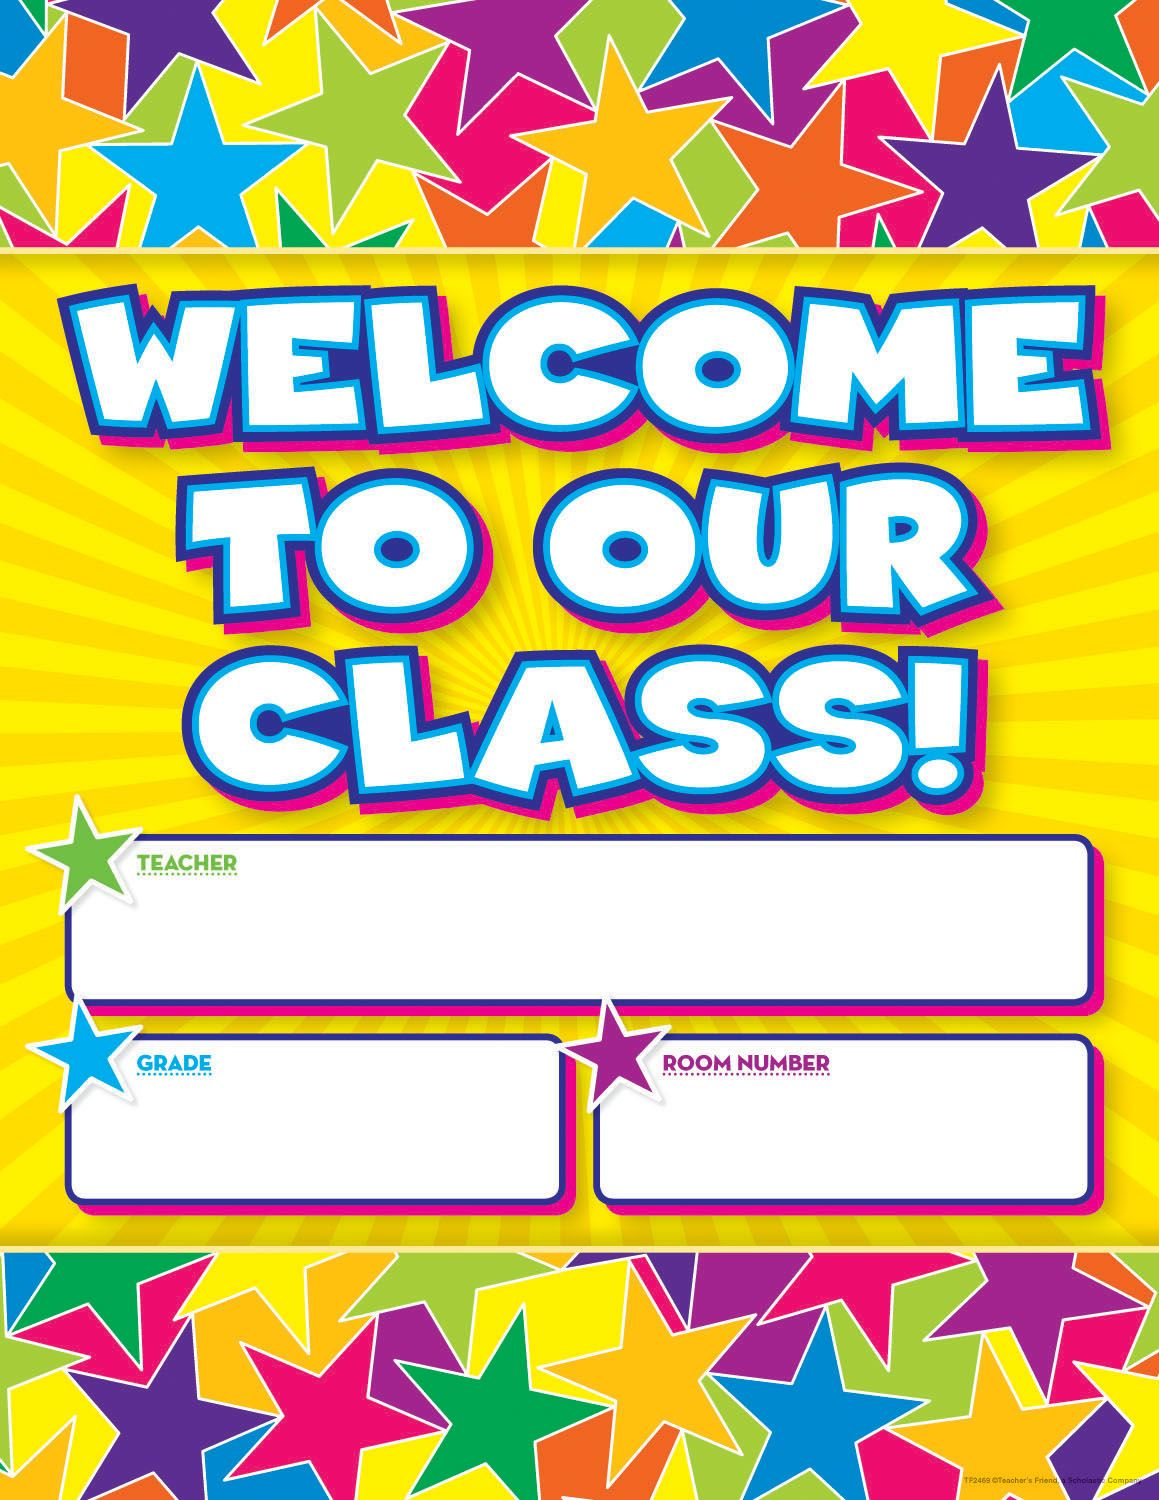 Graphic stars welcome chart also school classroom ambientation rh pinterest